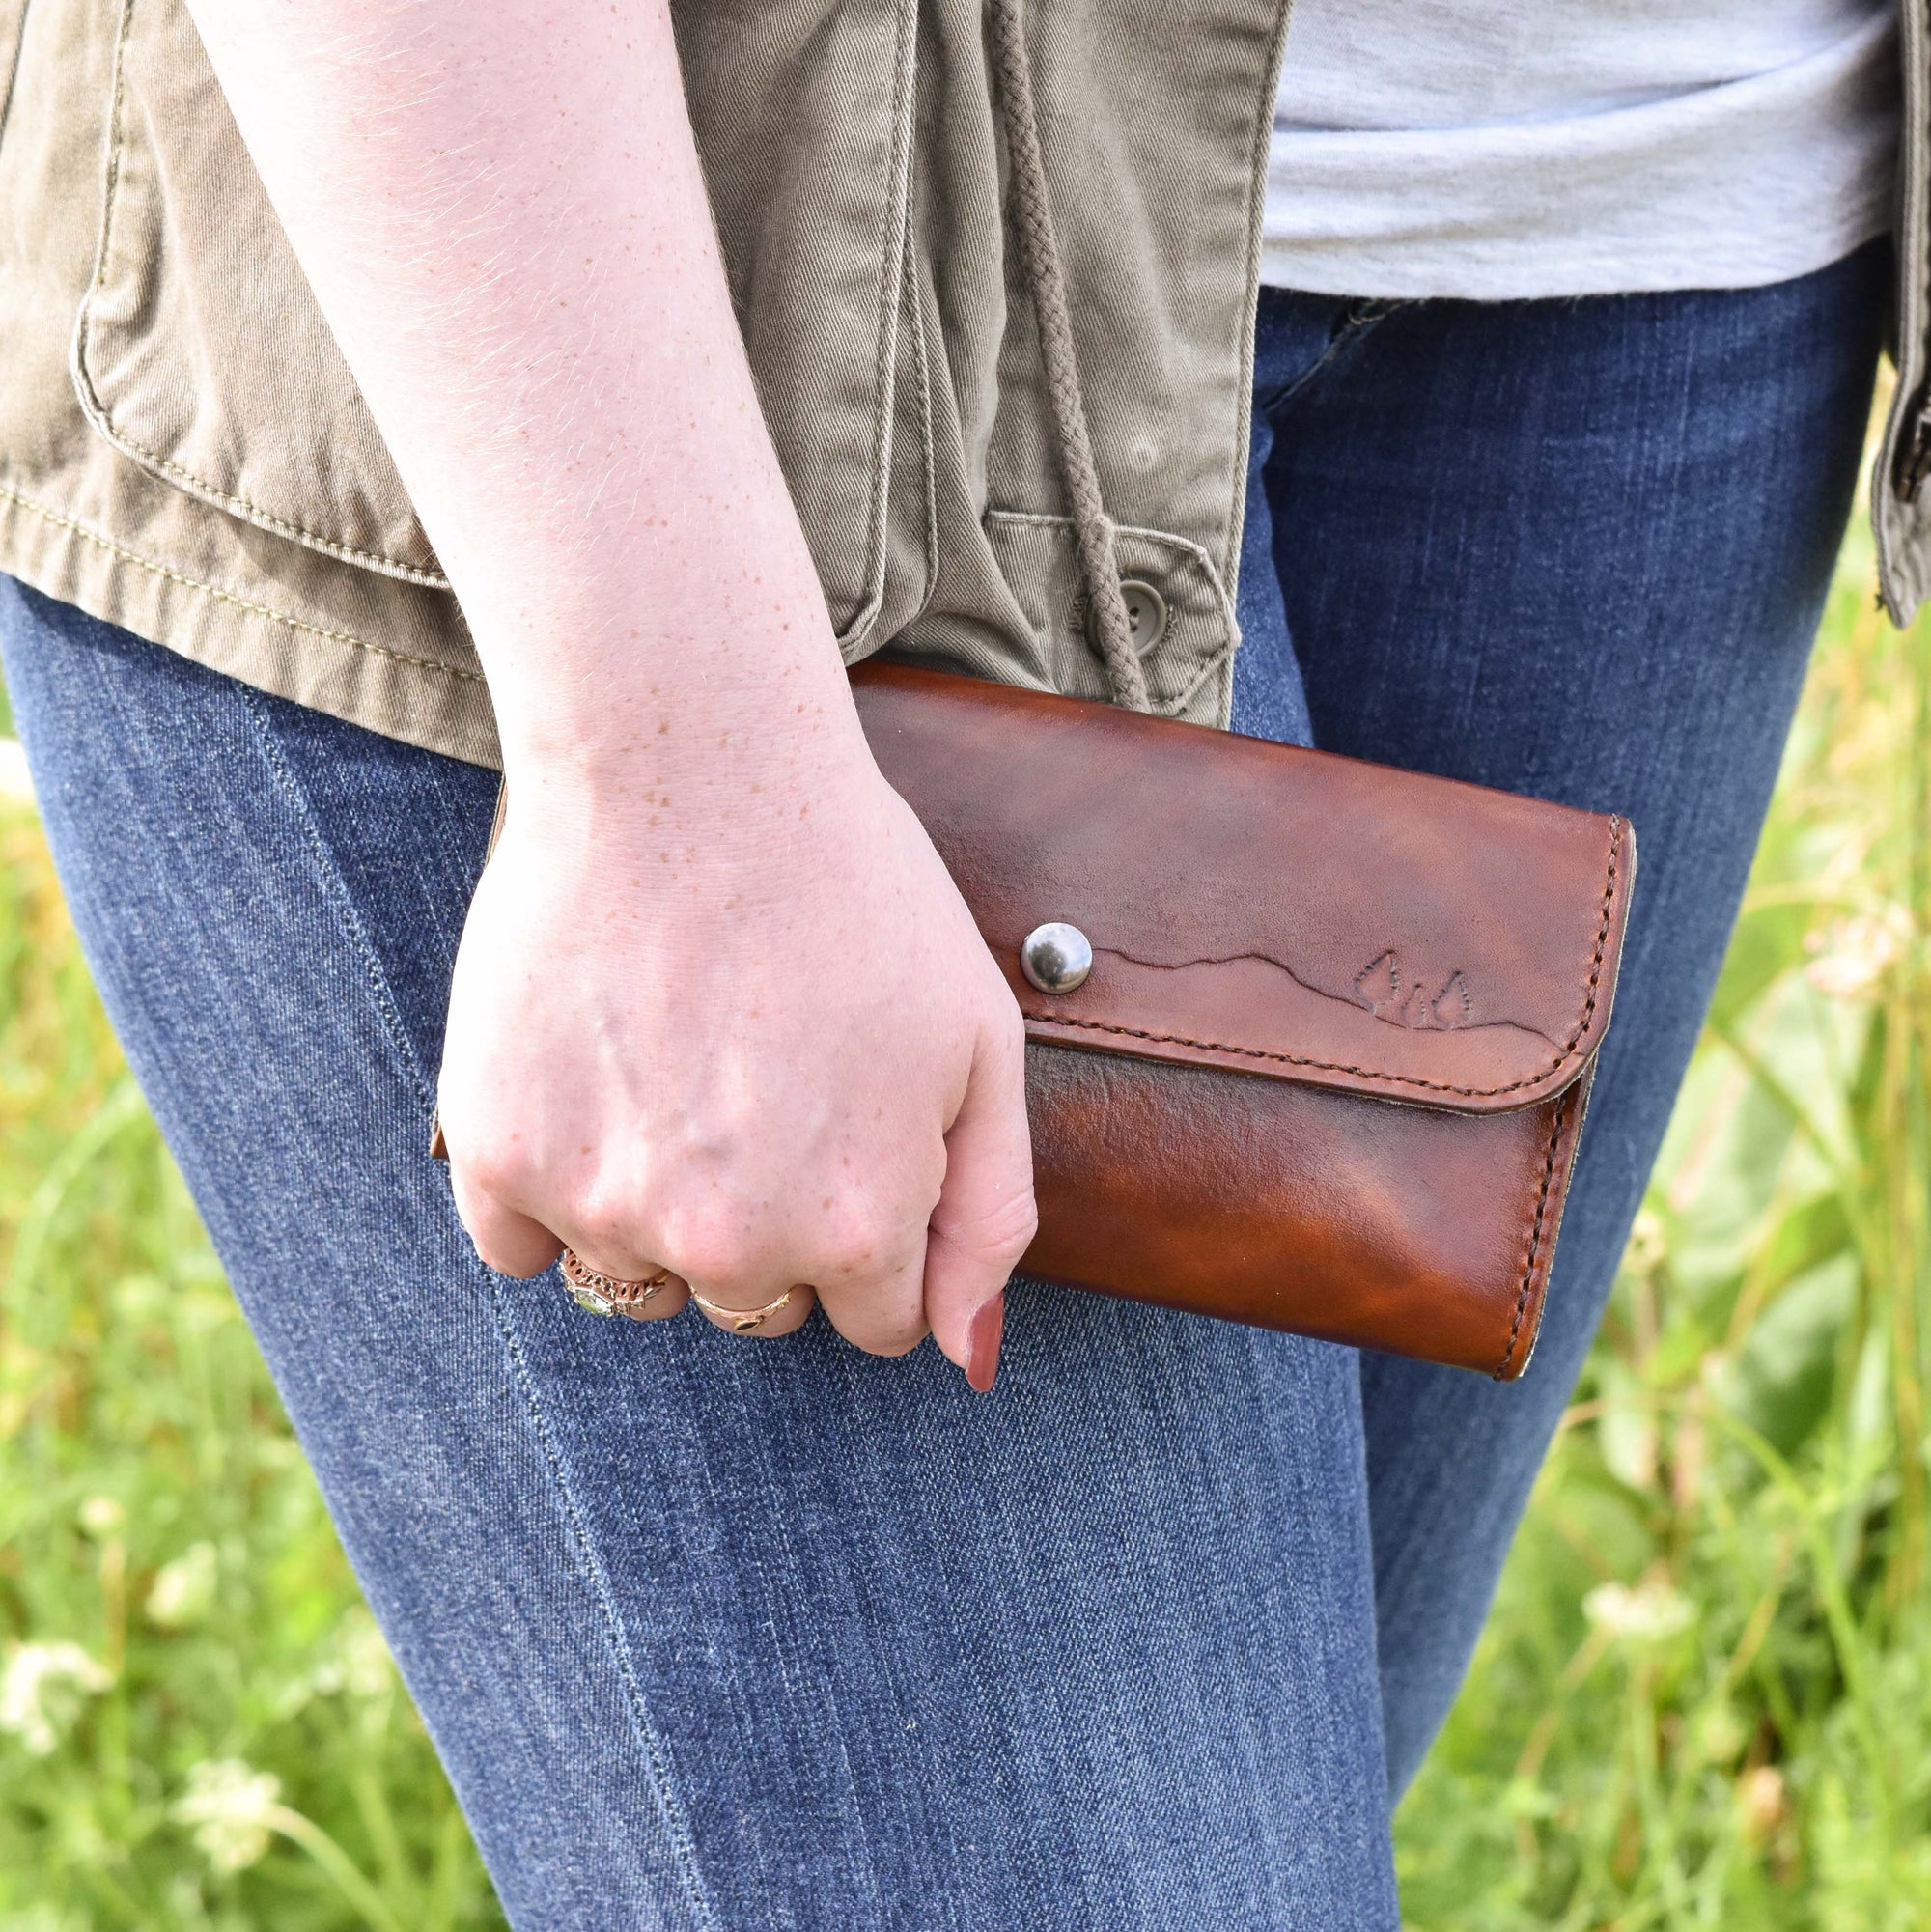 Conifer Couple Clutch Wallet, Artisan Goods handmade by Beth Millner Jewelry